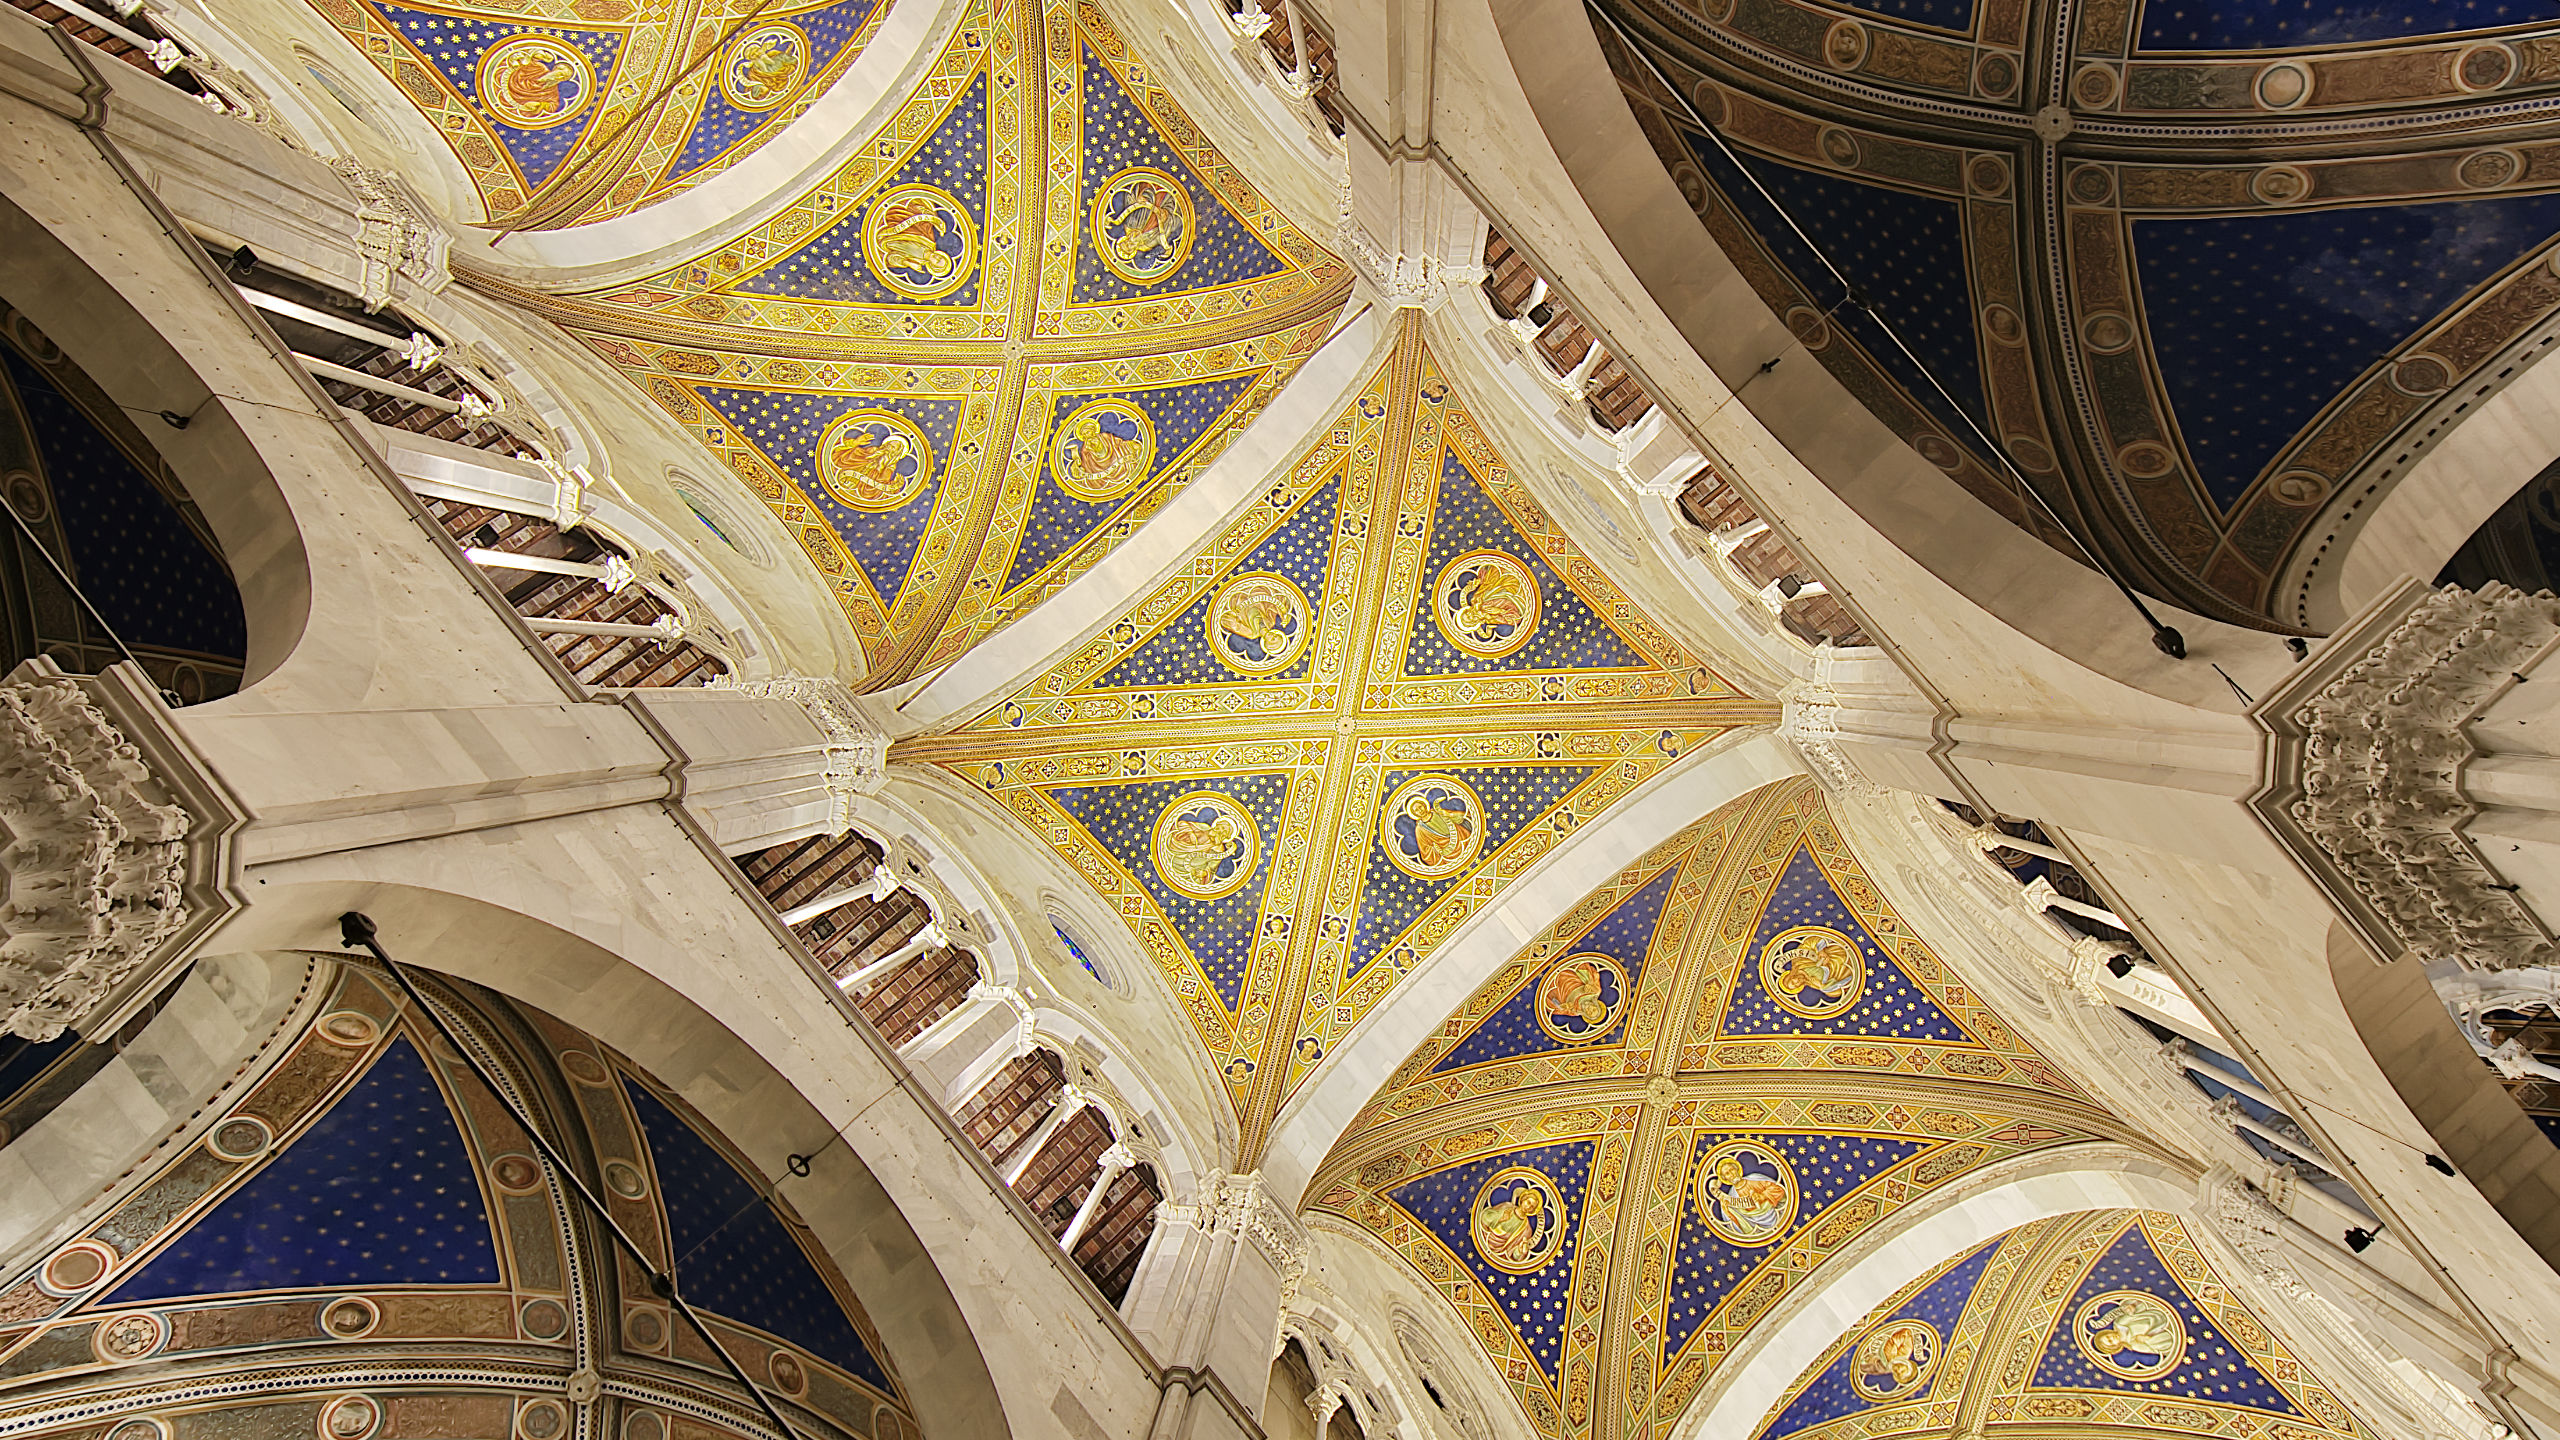 The ceiling of the Cattedrale di san martino in Lucca